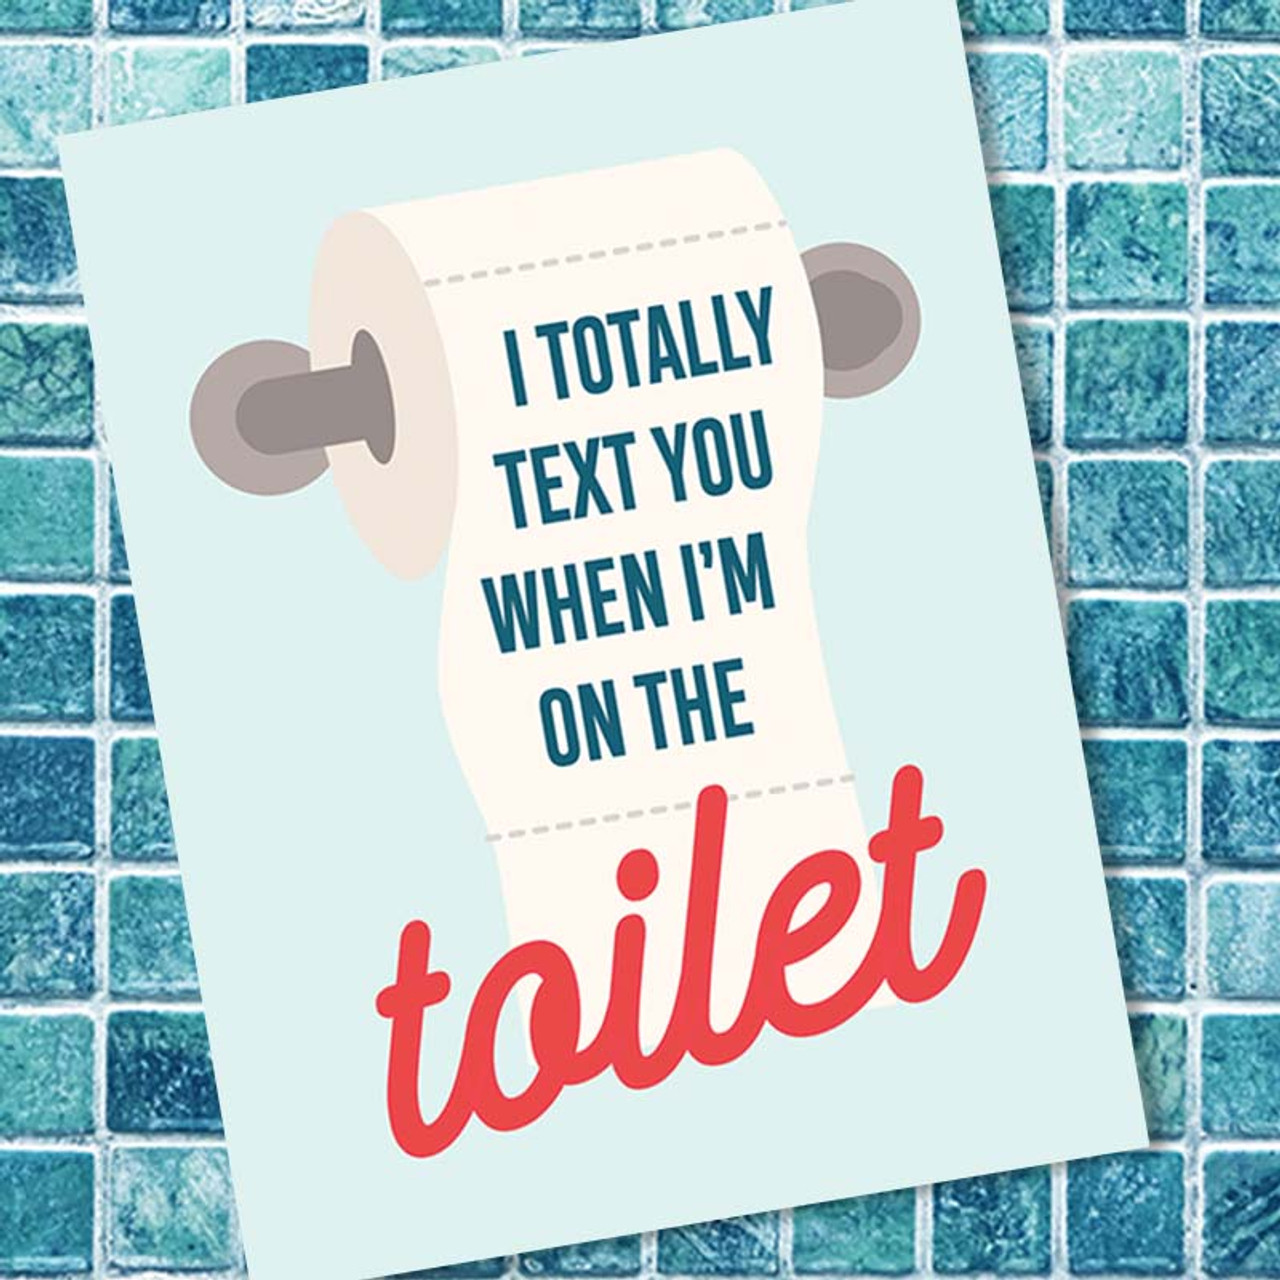 Love You! - I Totally Text You From The Bathroom